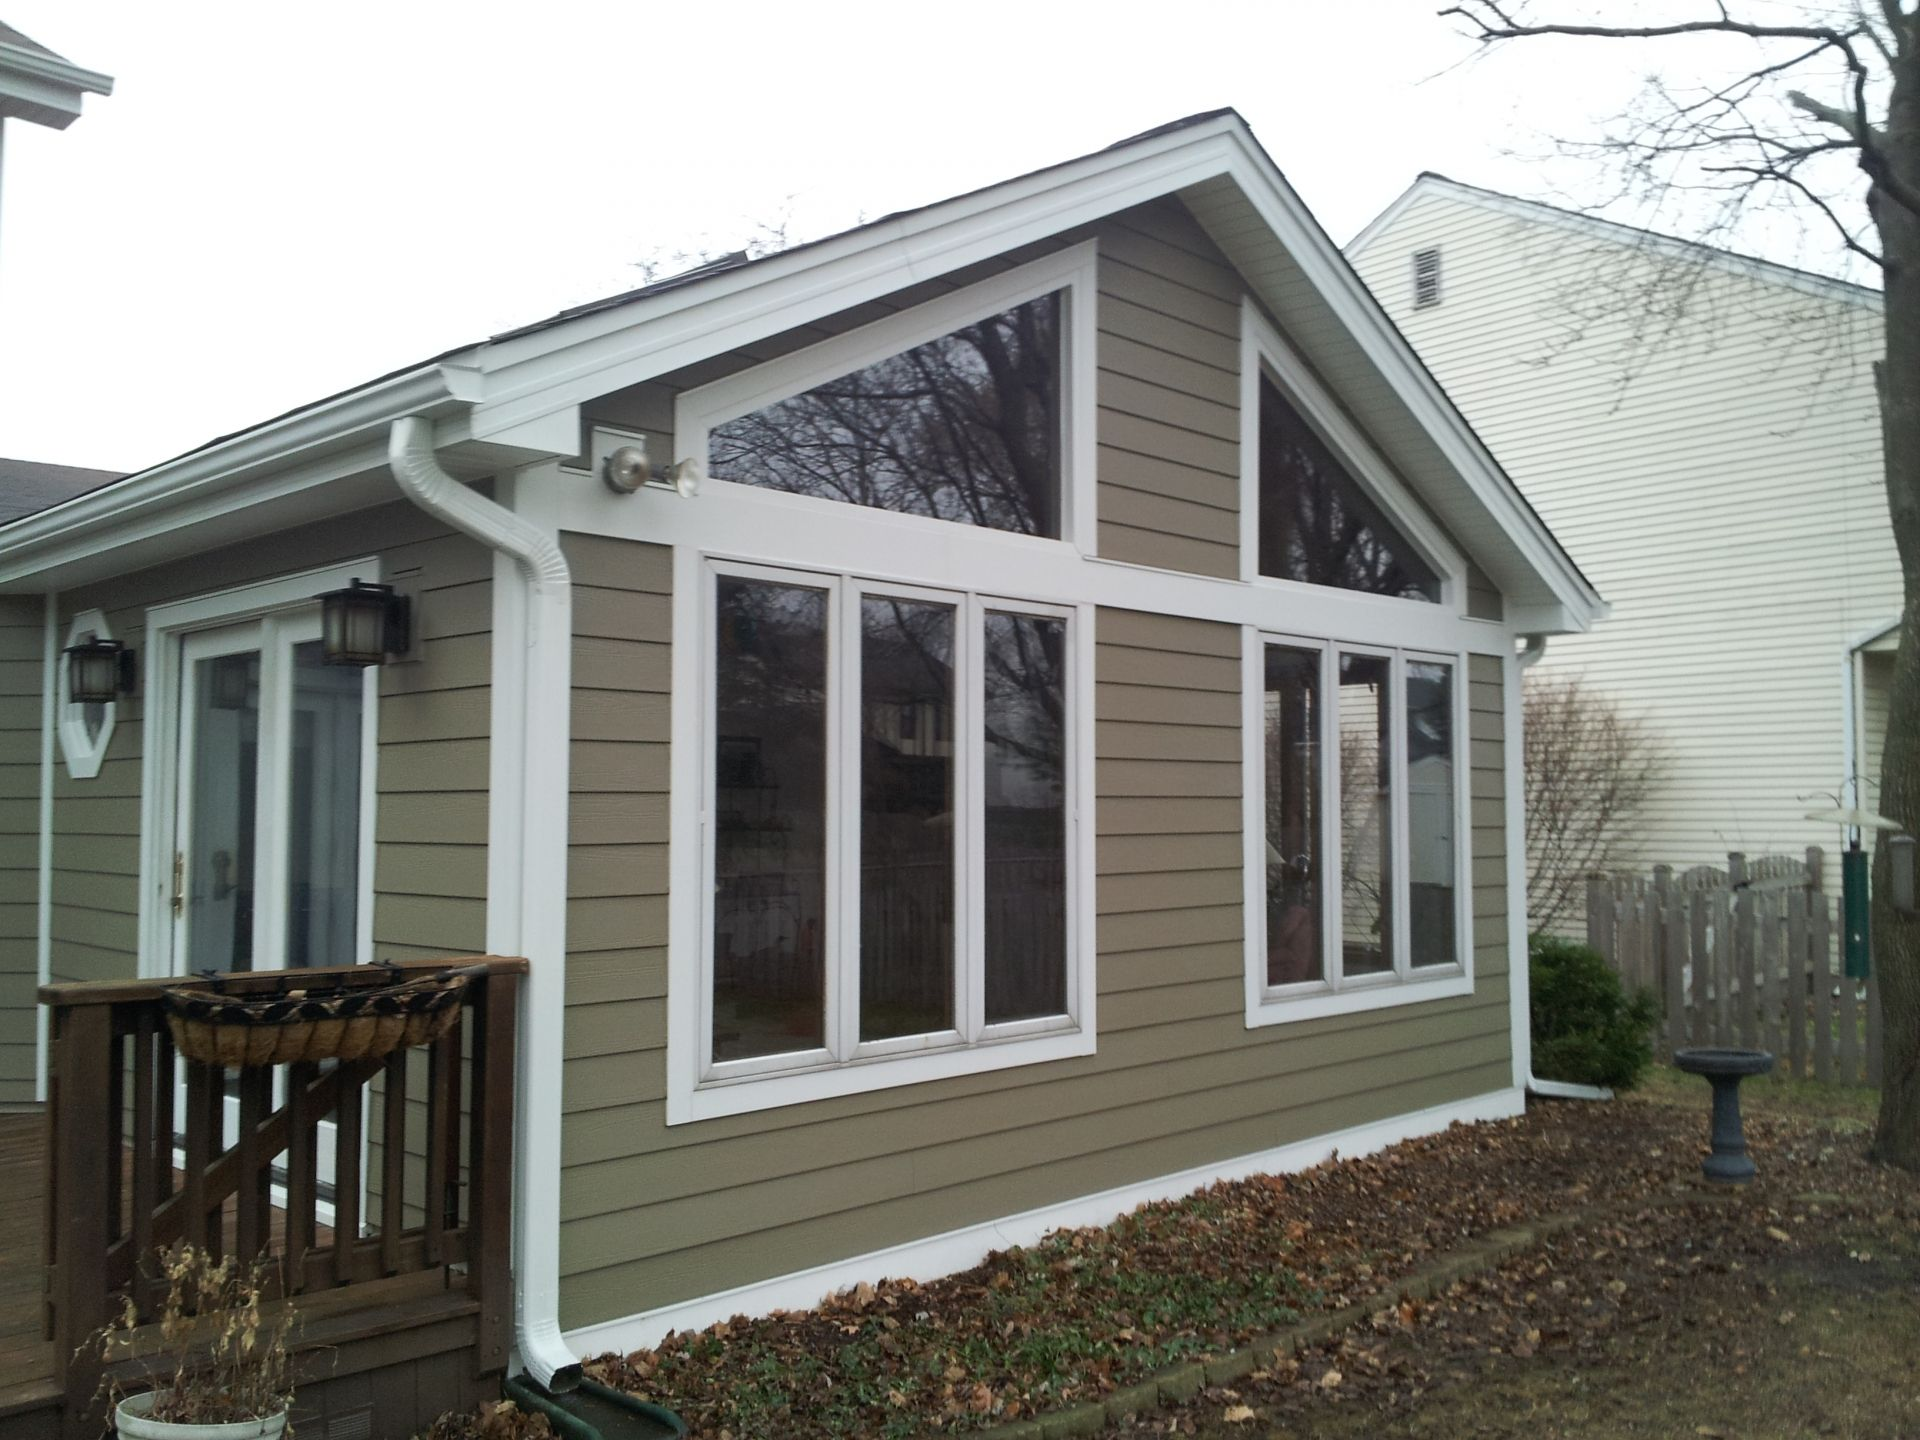 Andersen 100 Series Windows U0026 James Hardie Lap Siding: Woodstock Brown